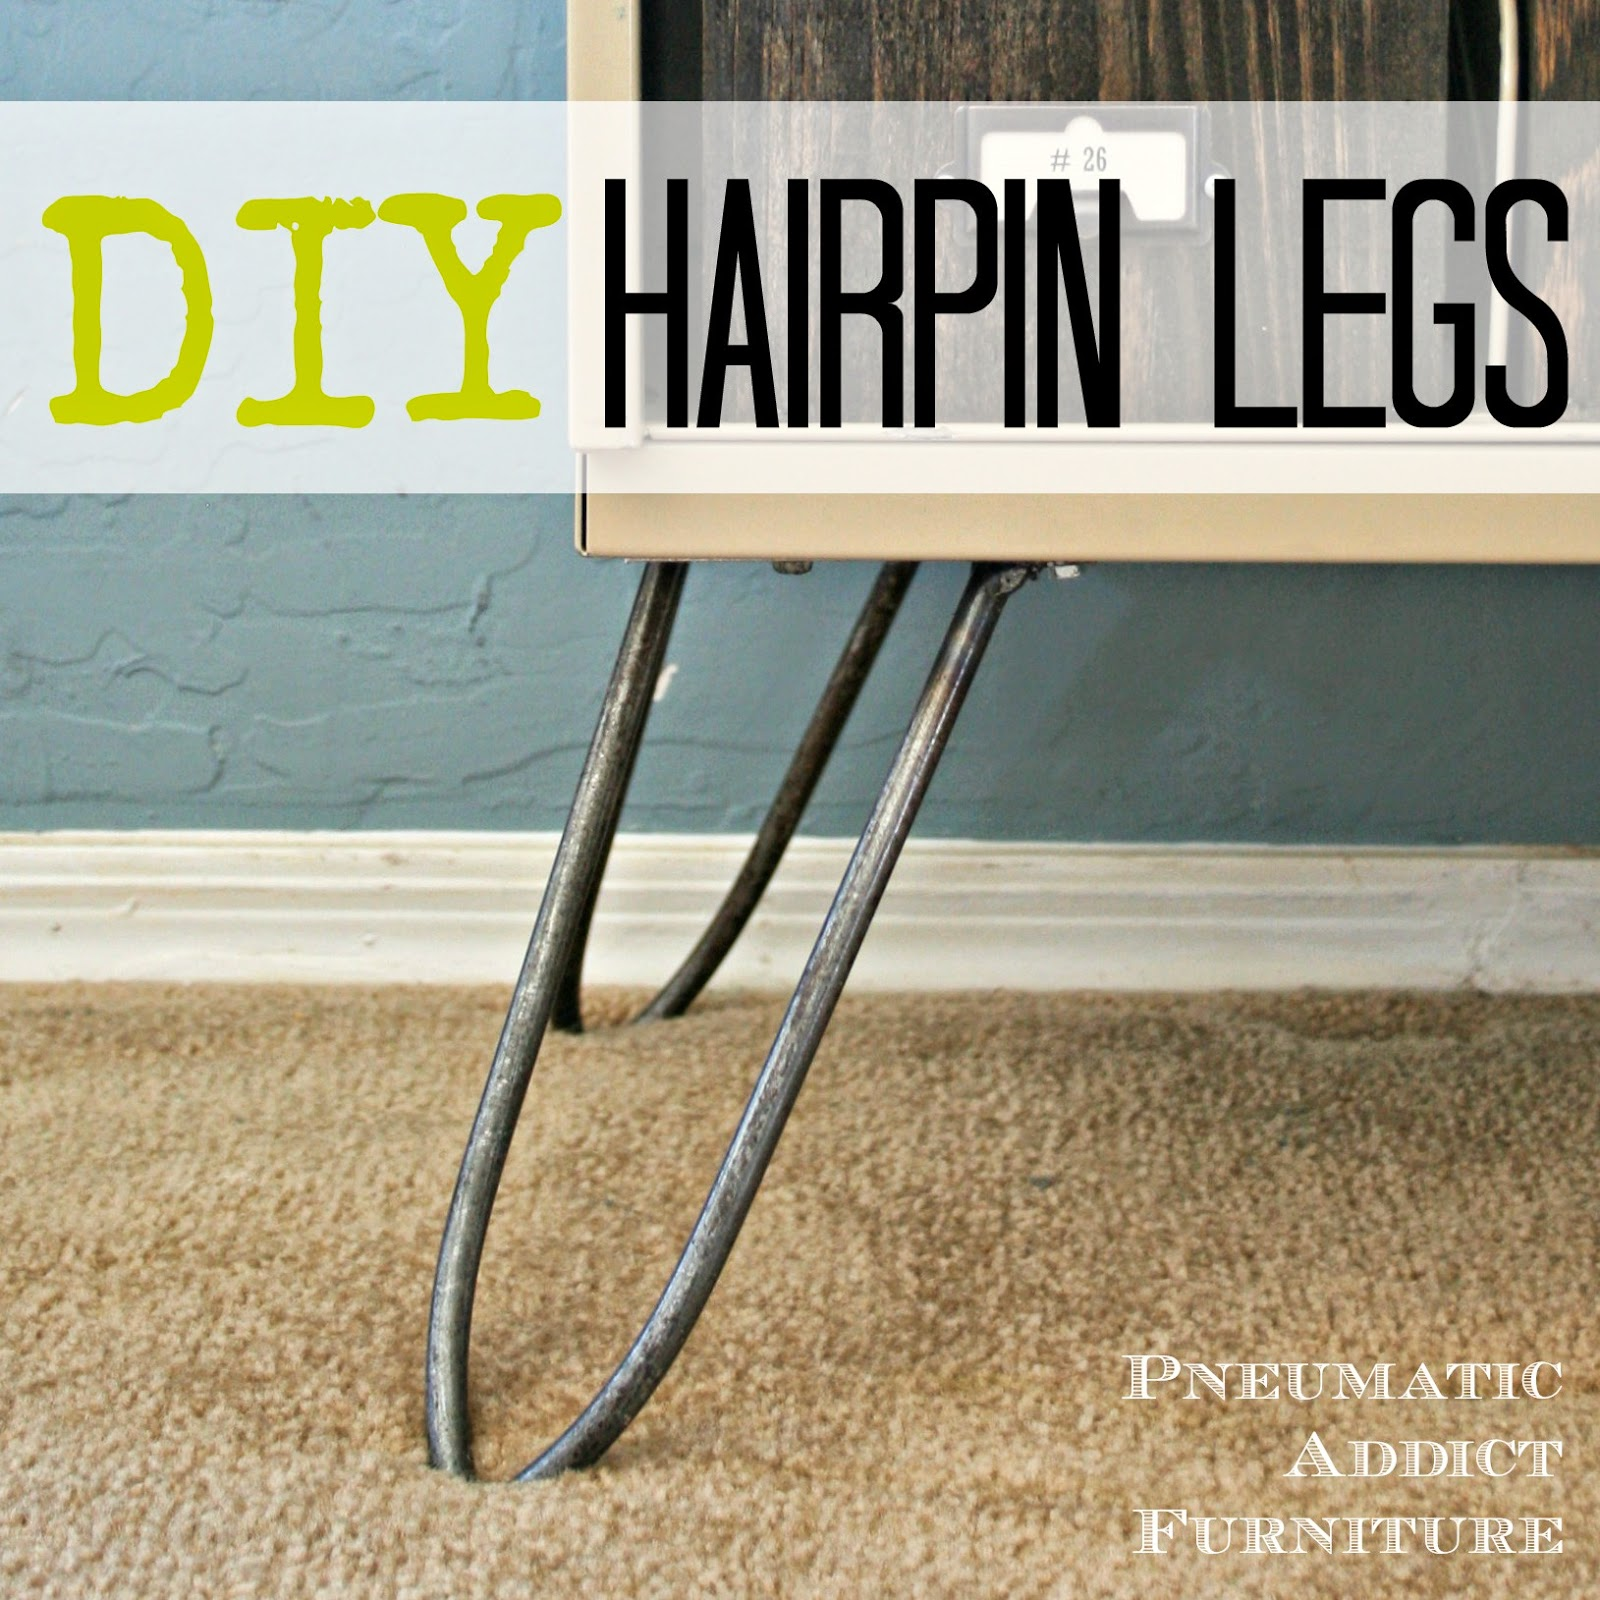 Diy Hairpin Legs Pneumatic Addict